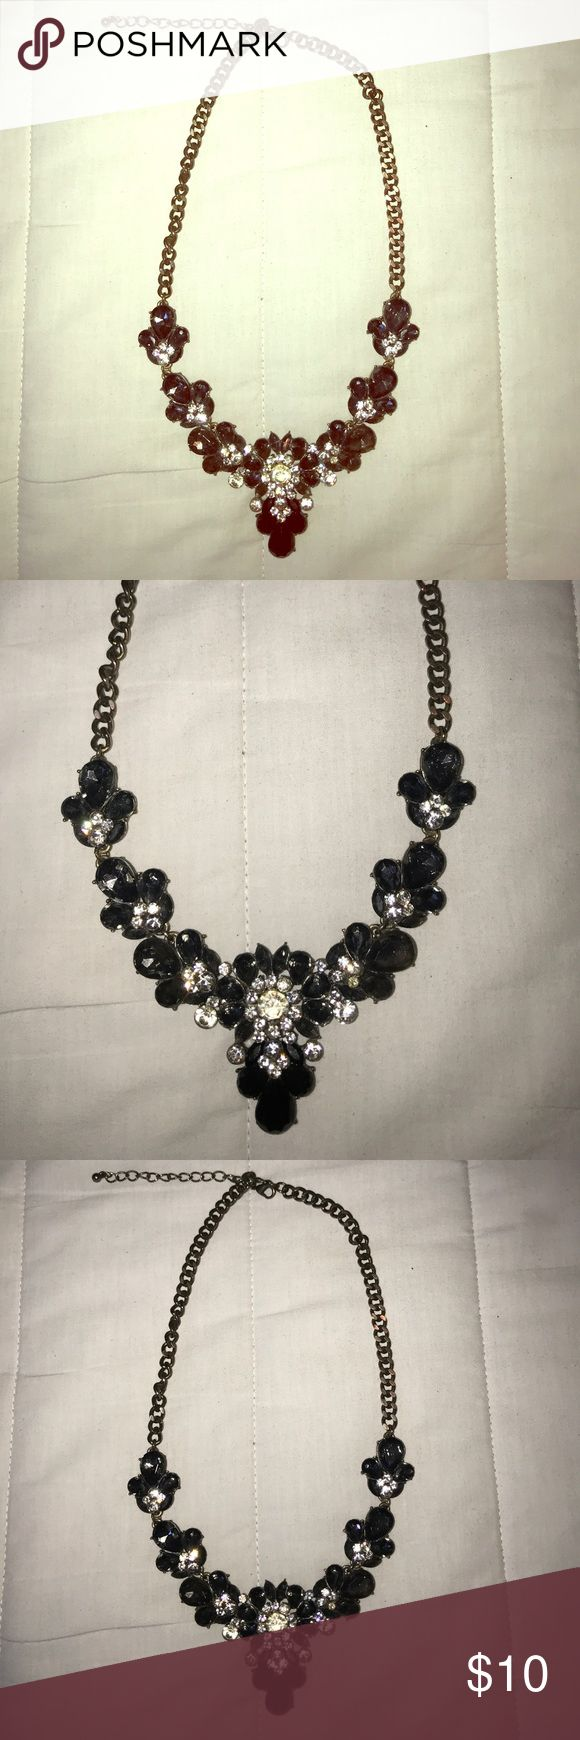 Black, Grey & White Statement Necklace Black, grey and white stoned statement necklace with dark hardware. Slightly tarnished metal on the back. Charming Charlie Jewelry Necklaces